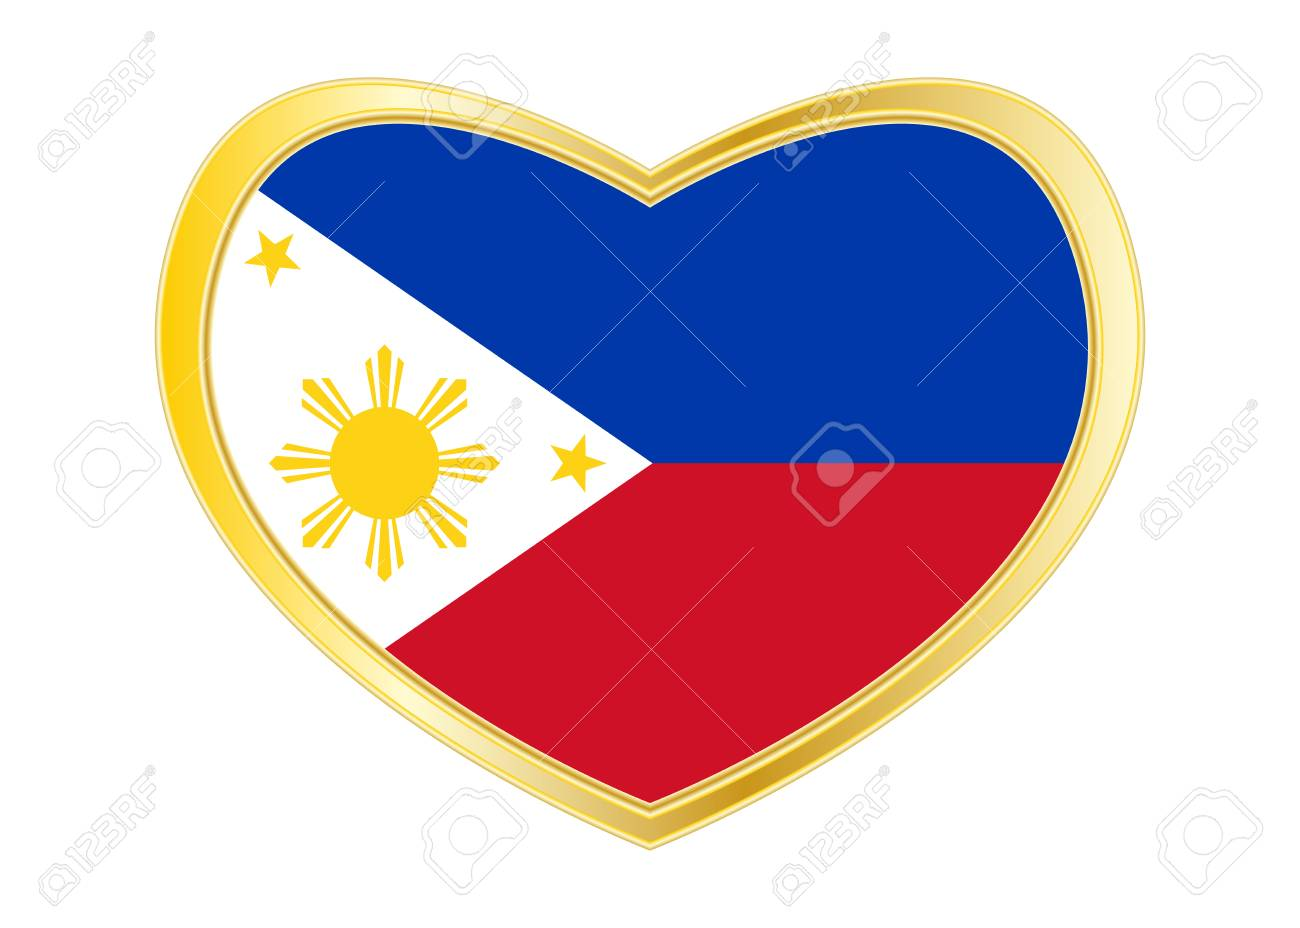 Philippine national official flag patriotic symbol banner philippine national official flag patriotic symbol banner element background correct colors buycottarizona Images